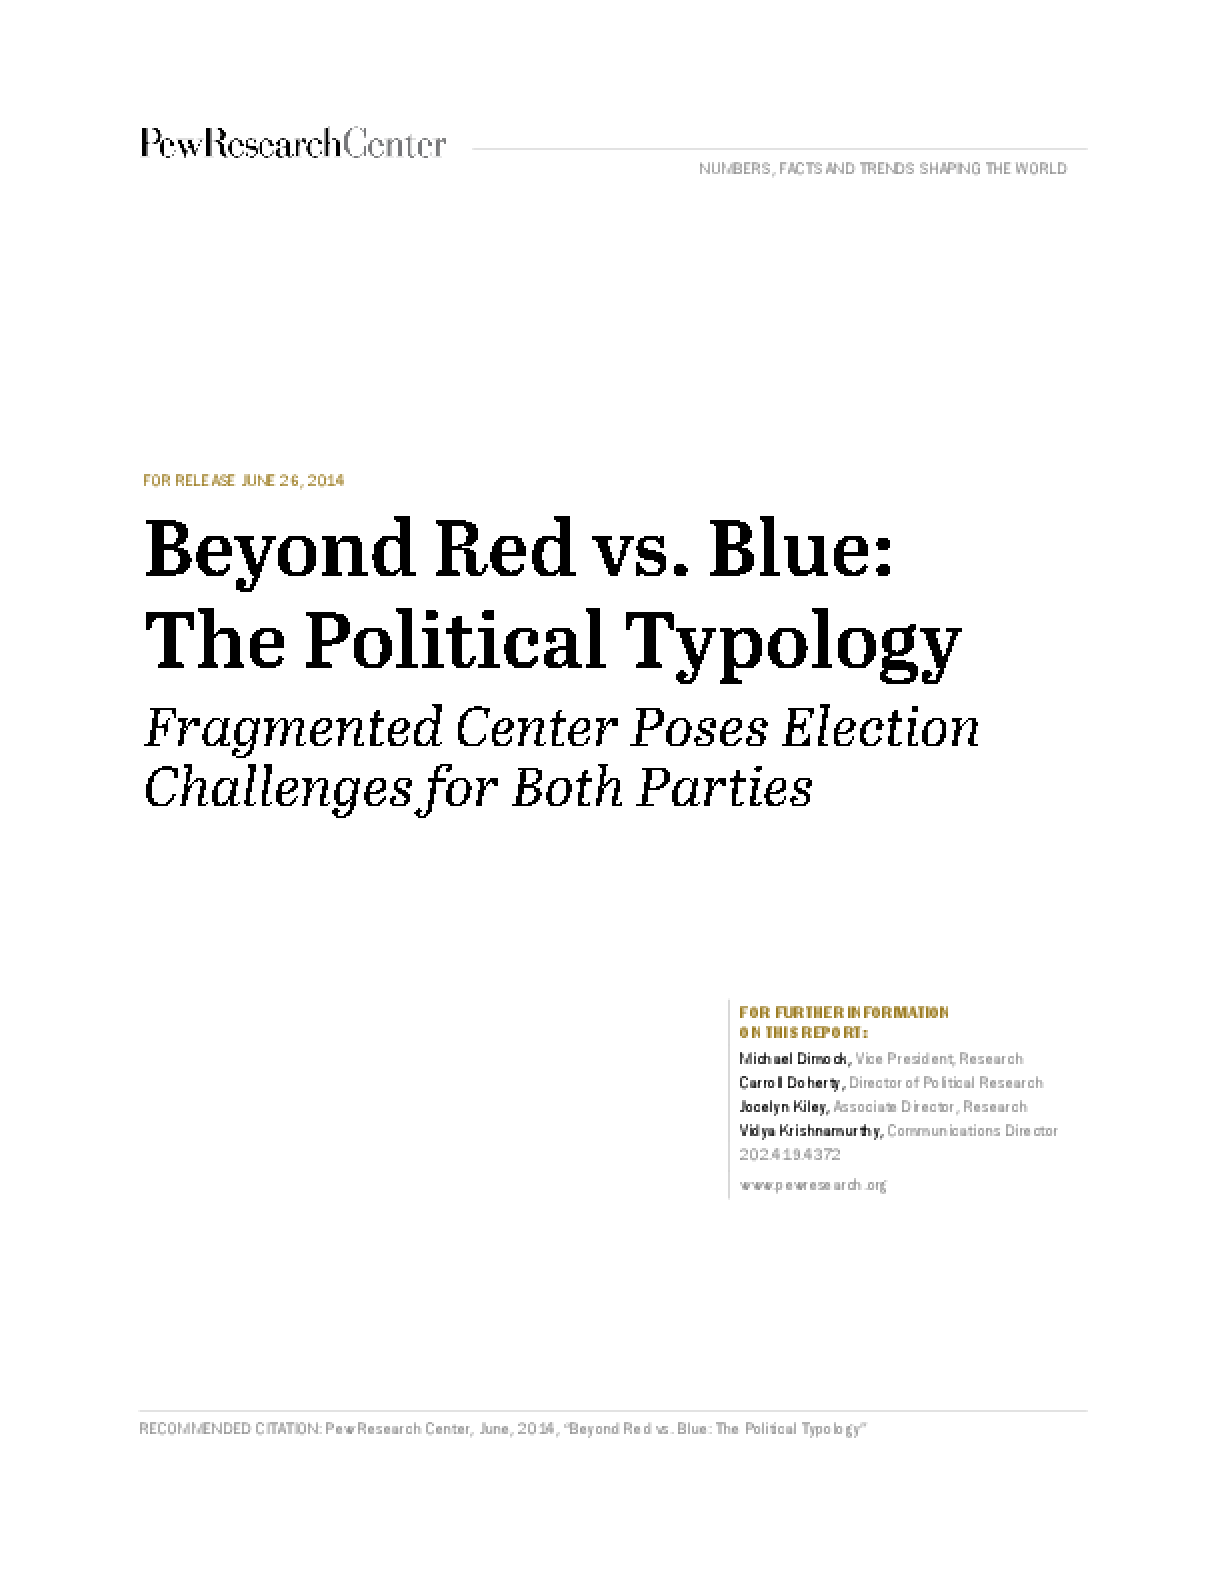 Beyond Red vs. Blue: The Political Typology